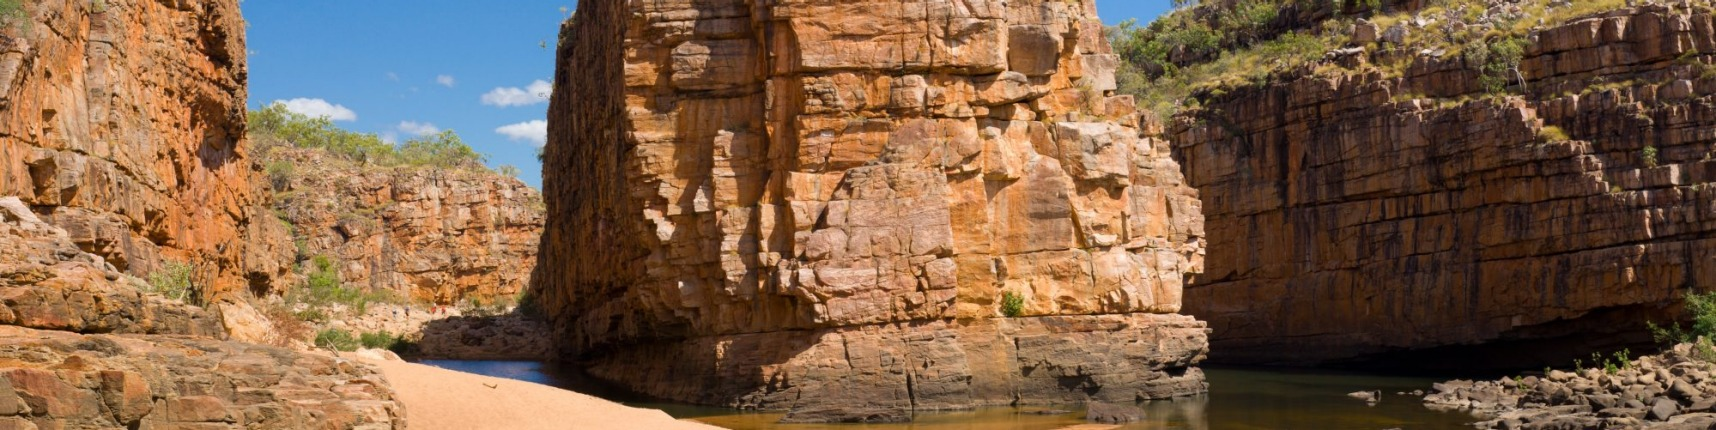 Top End, Katherine Gorge, Northern Territory